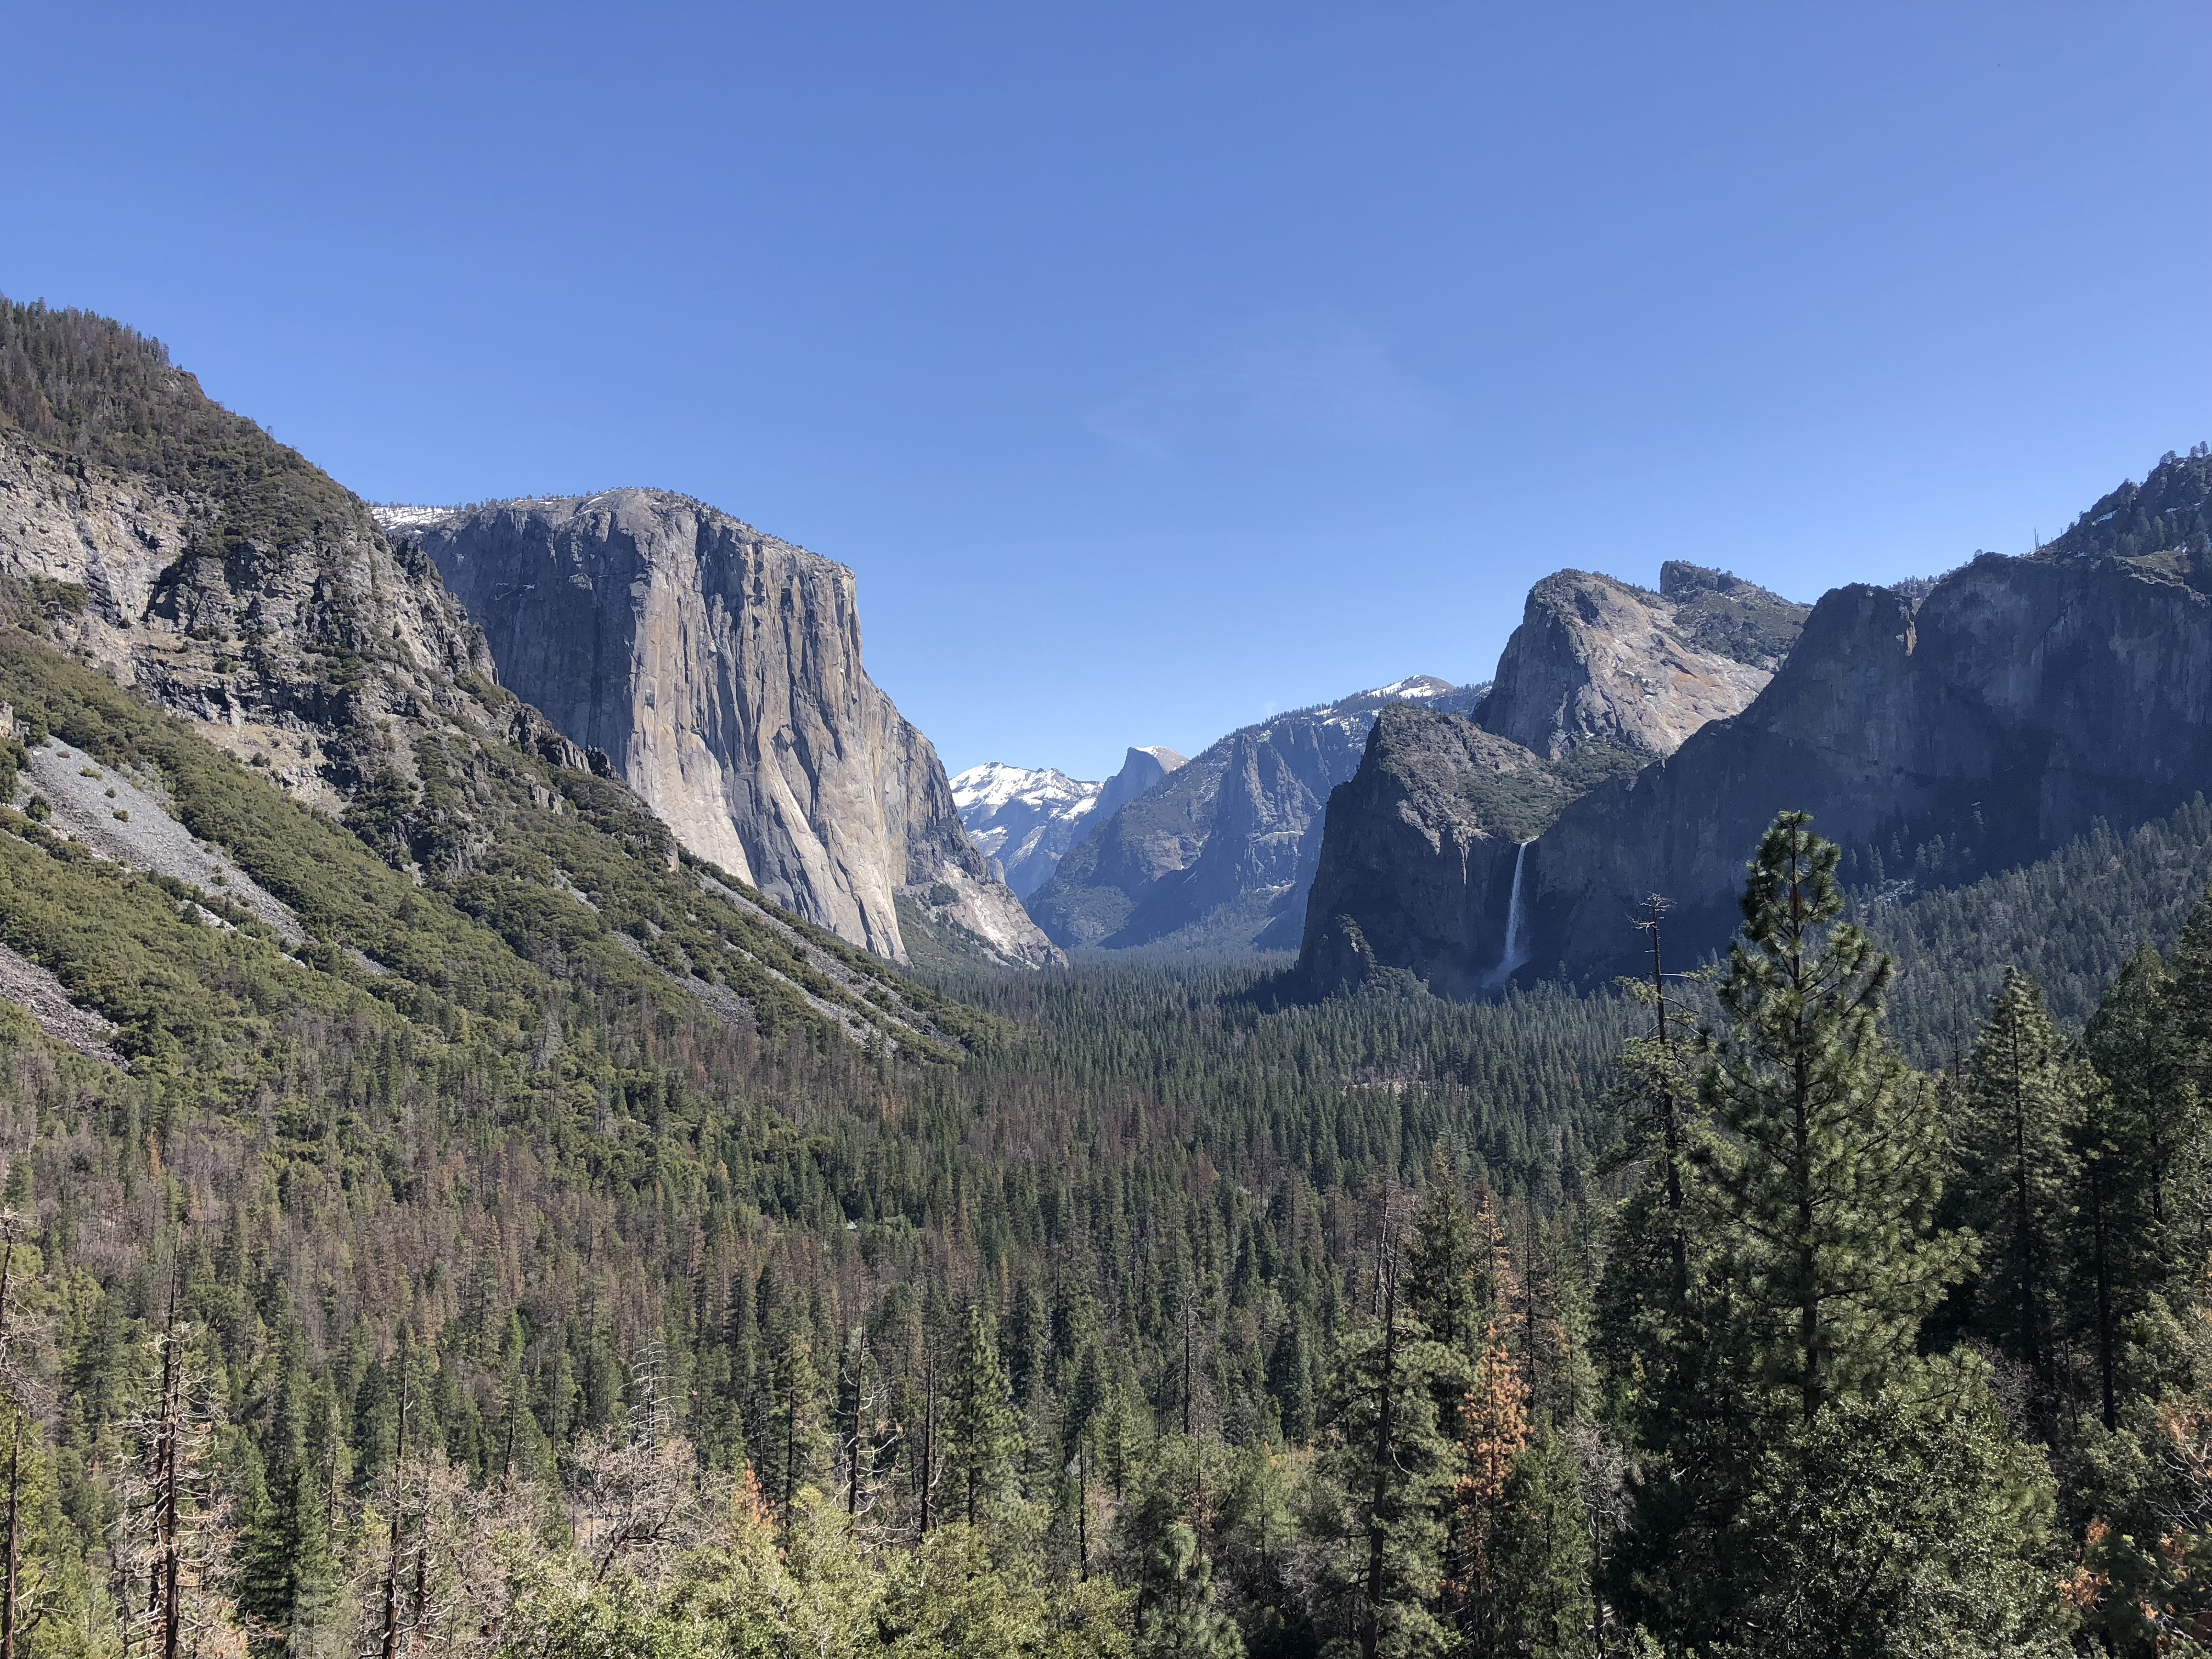 the famous Tunnel View in Yosemite